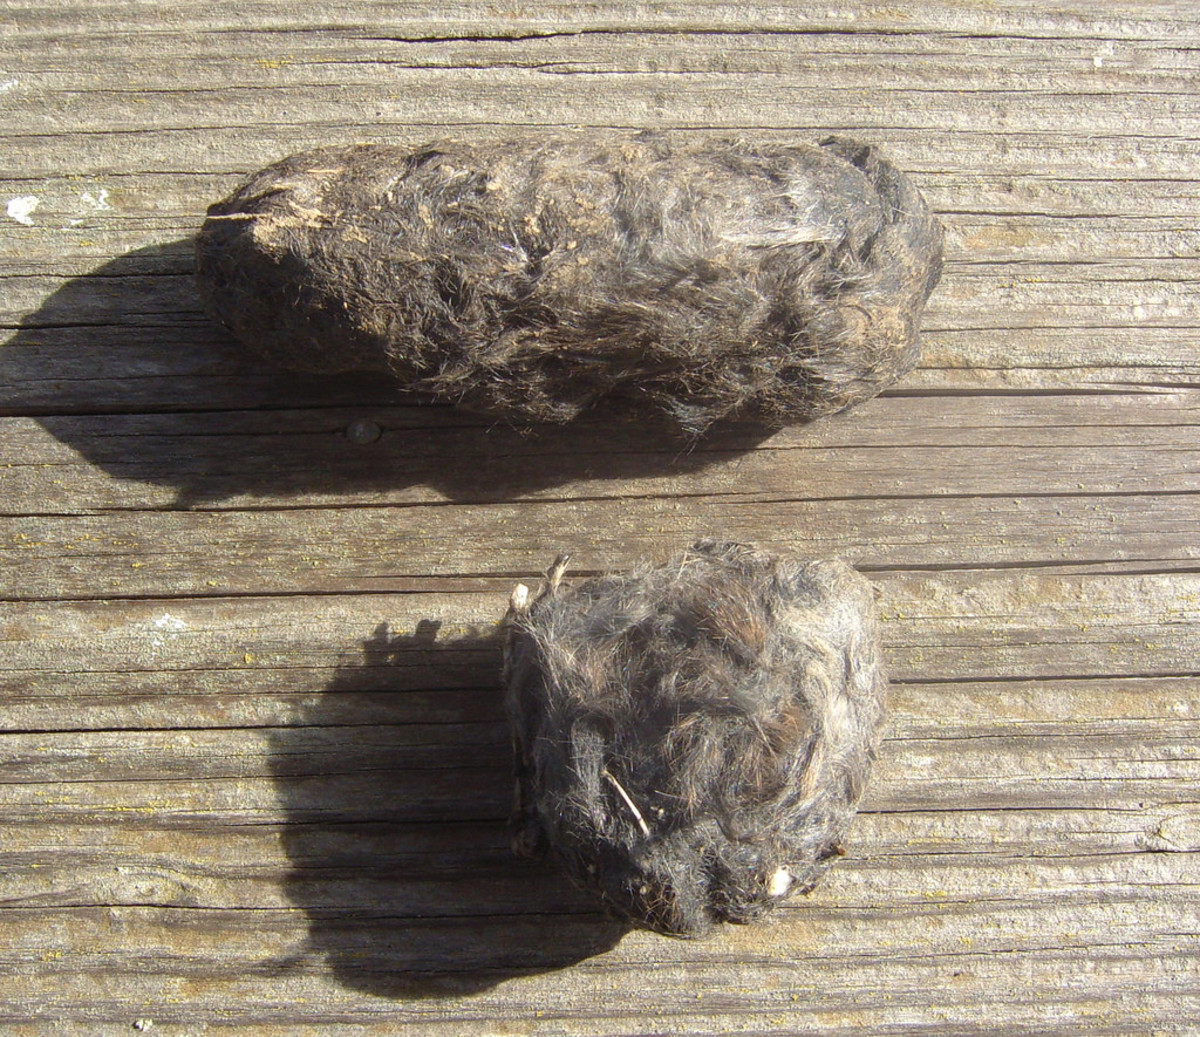 Here's an example of what owl pellets look like.